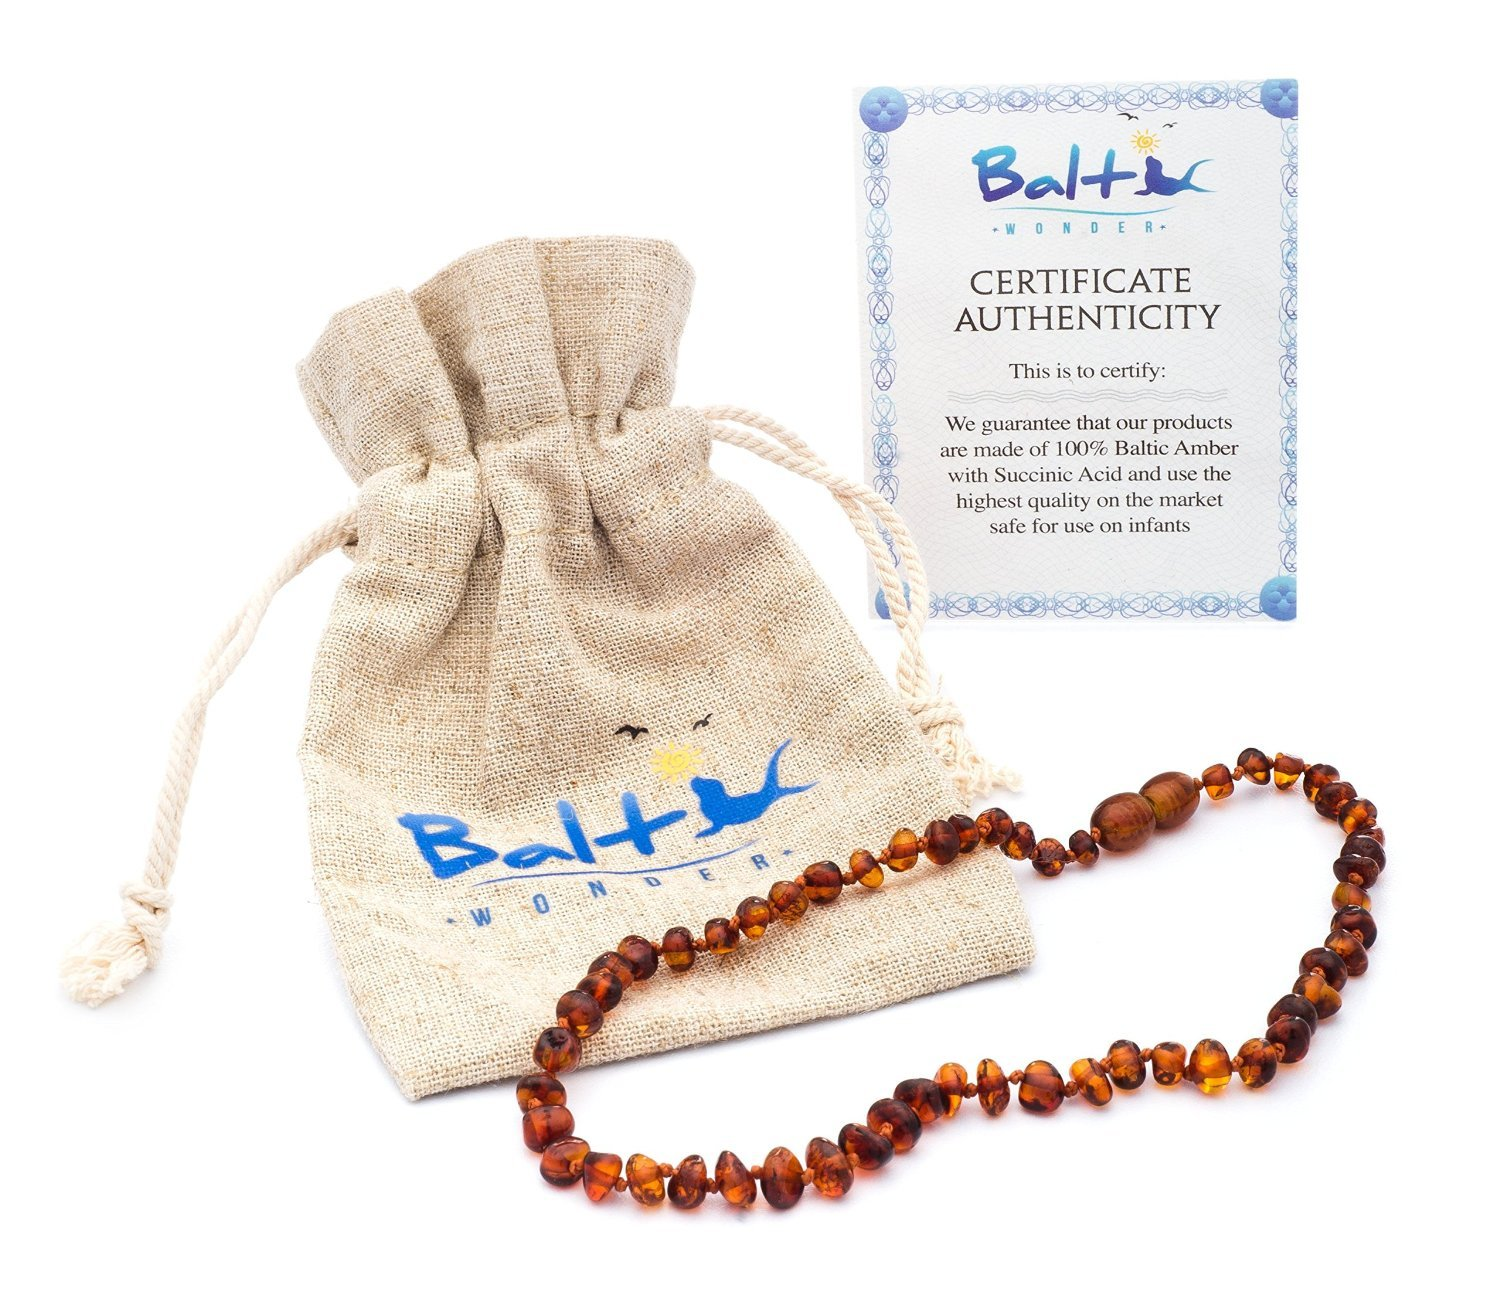 Baltic Amber Teething Necklace For Babies (Unisex) (Cognac) - Anti Flammatory, Drooling & Teething Pain Reduce Properties - Natural Certificated Oval Baltic Jewelry with the Highest Quality Guaranteed by Baltic Wonder